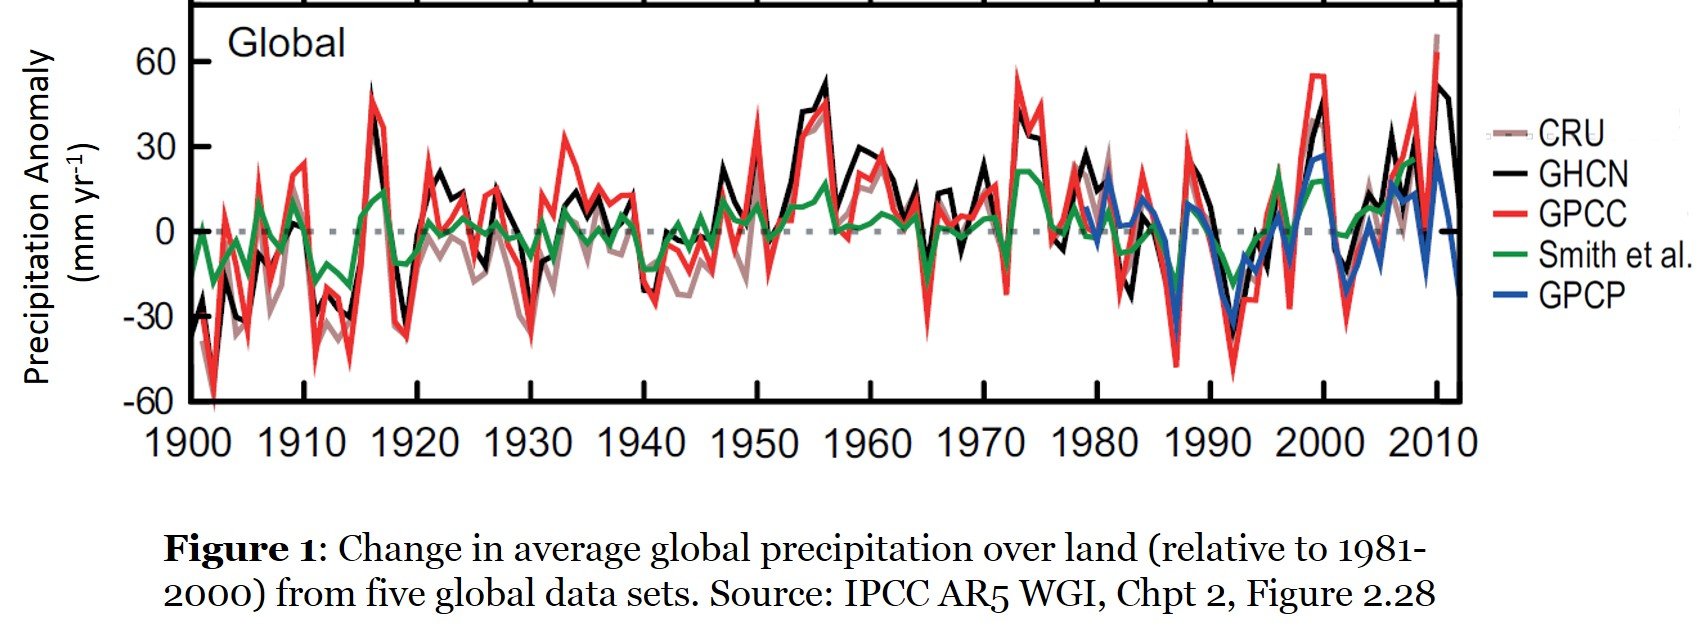 Figure1-Global-Precip_Trend